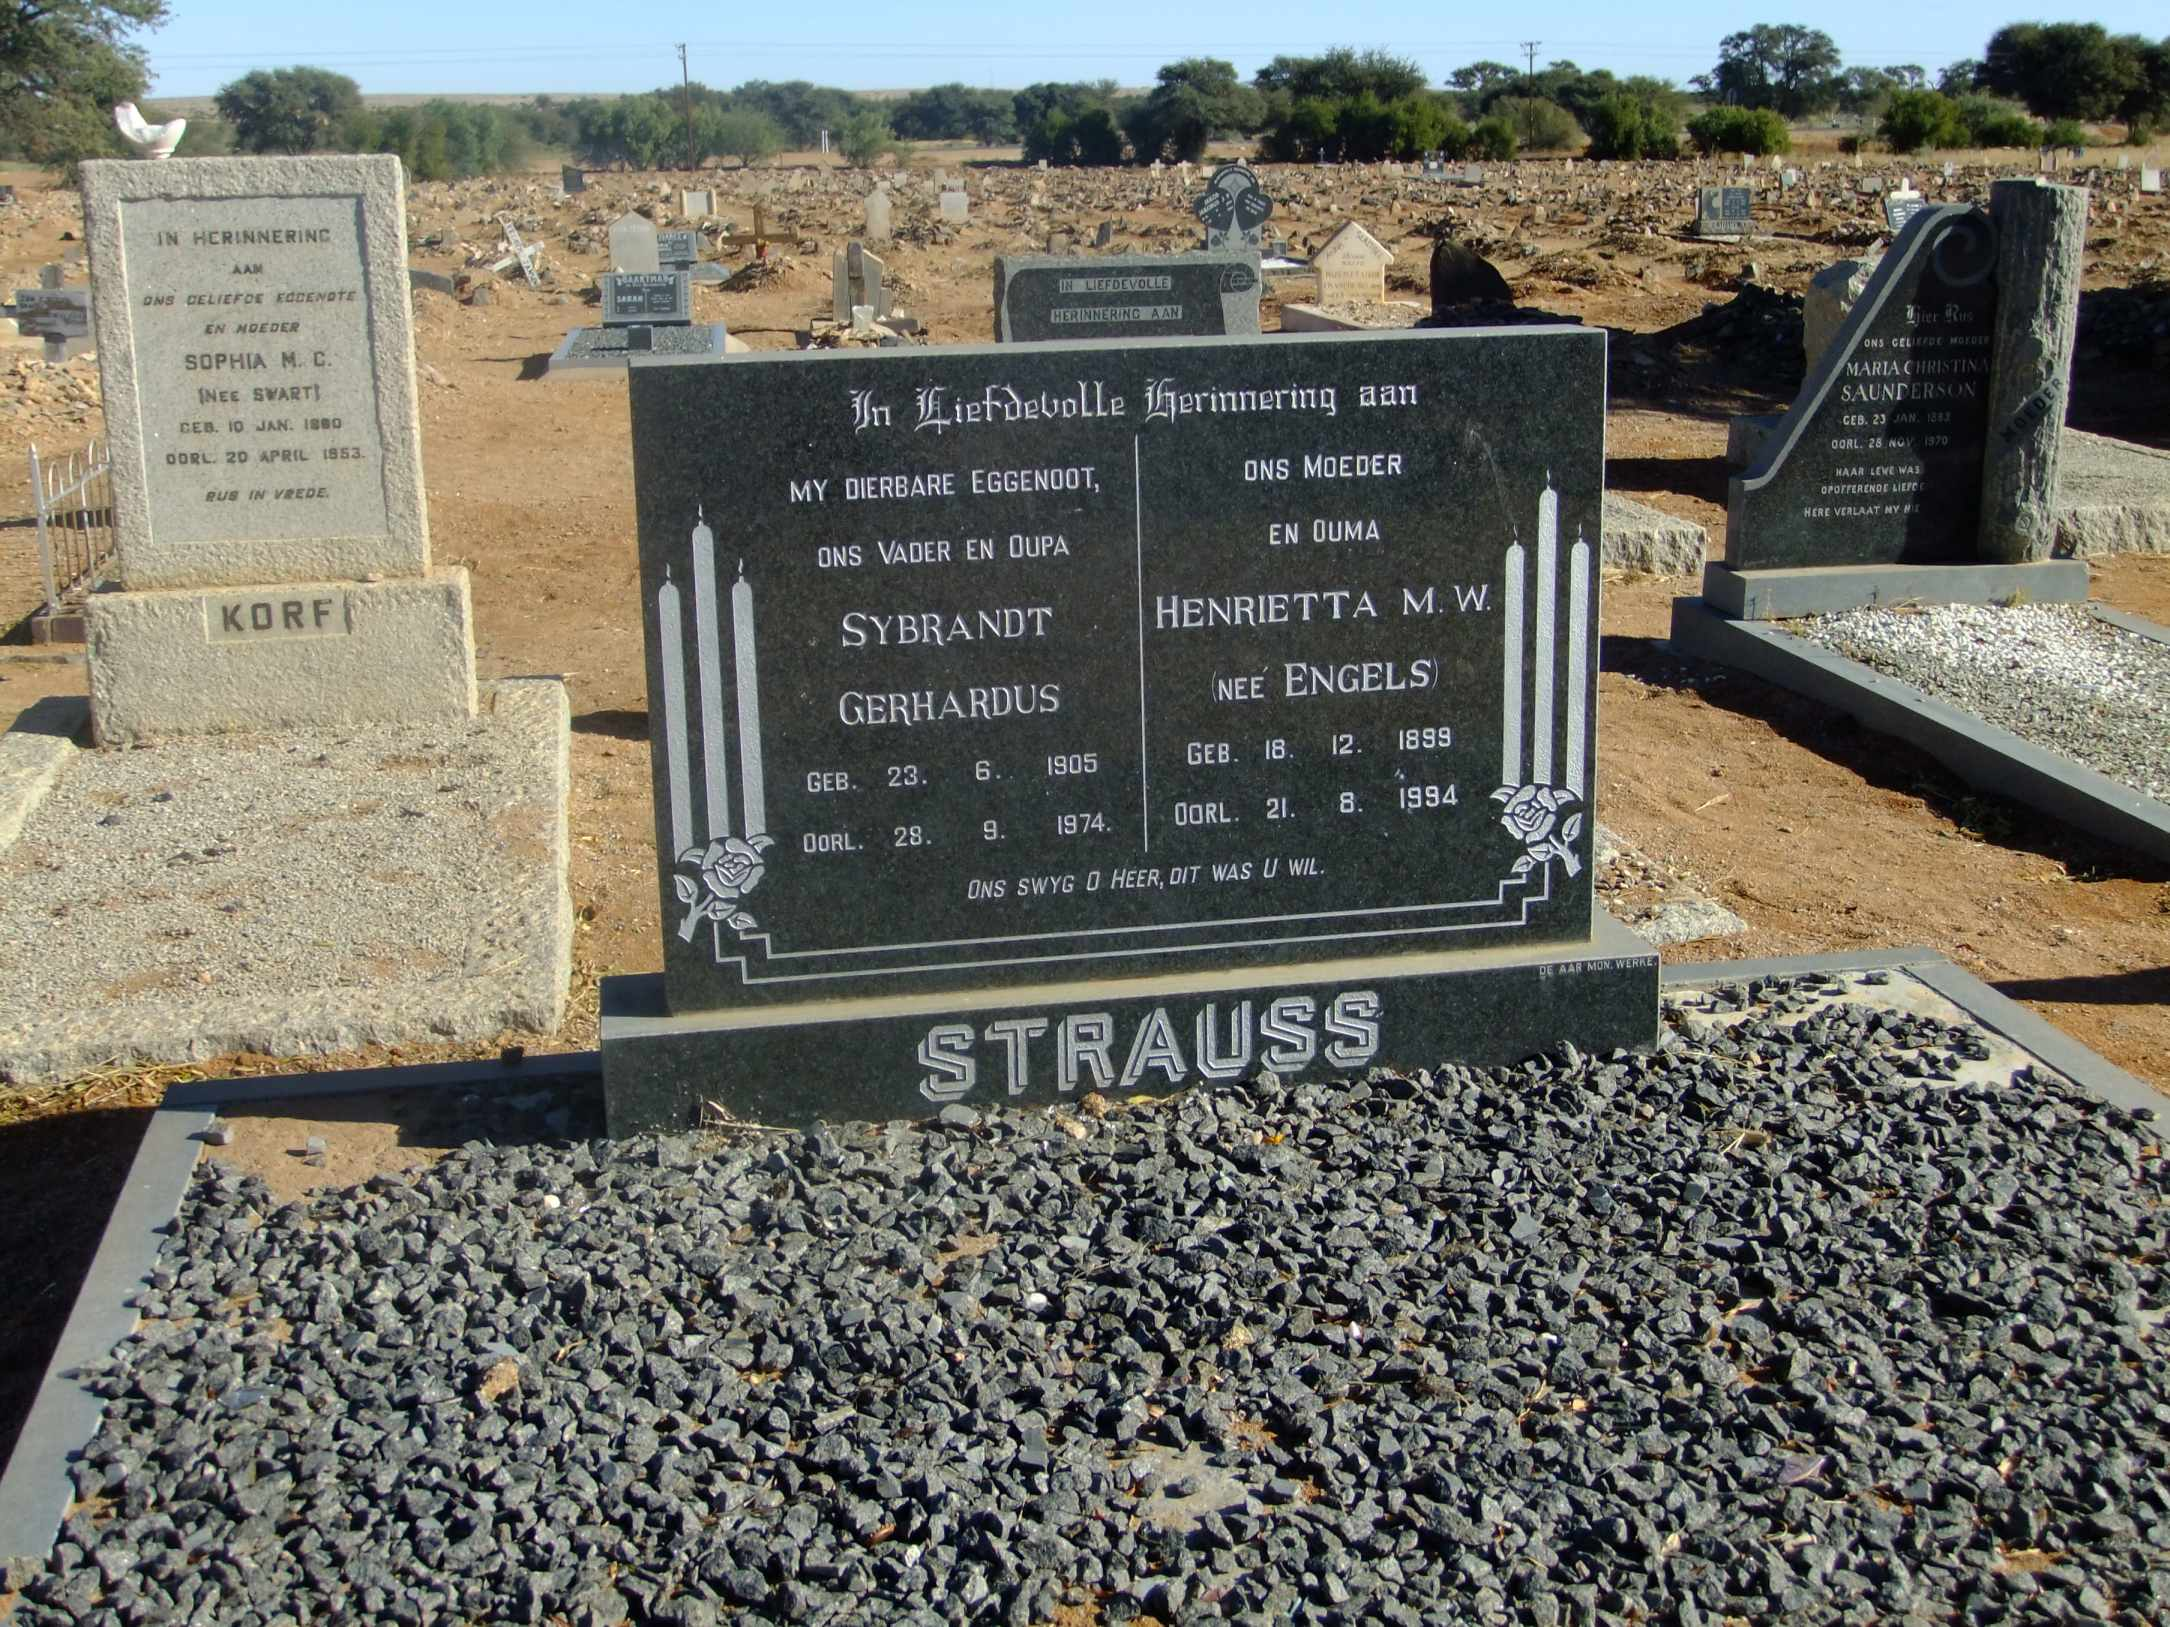 Strauss, Sybrandt Gerhardus born 23 June 1905 died 28 September 1974 and Henrietta MW nee Engels born 18 December 1899 died 21 August 1994